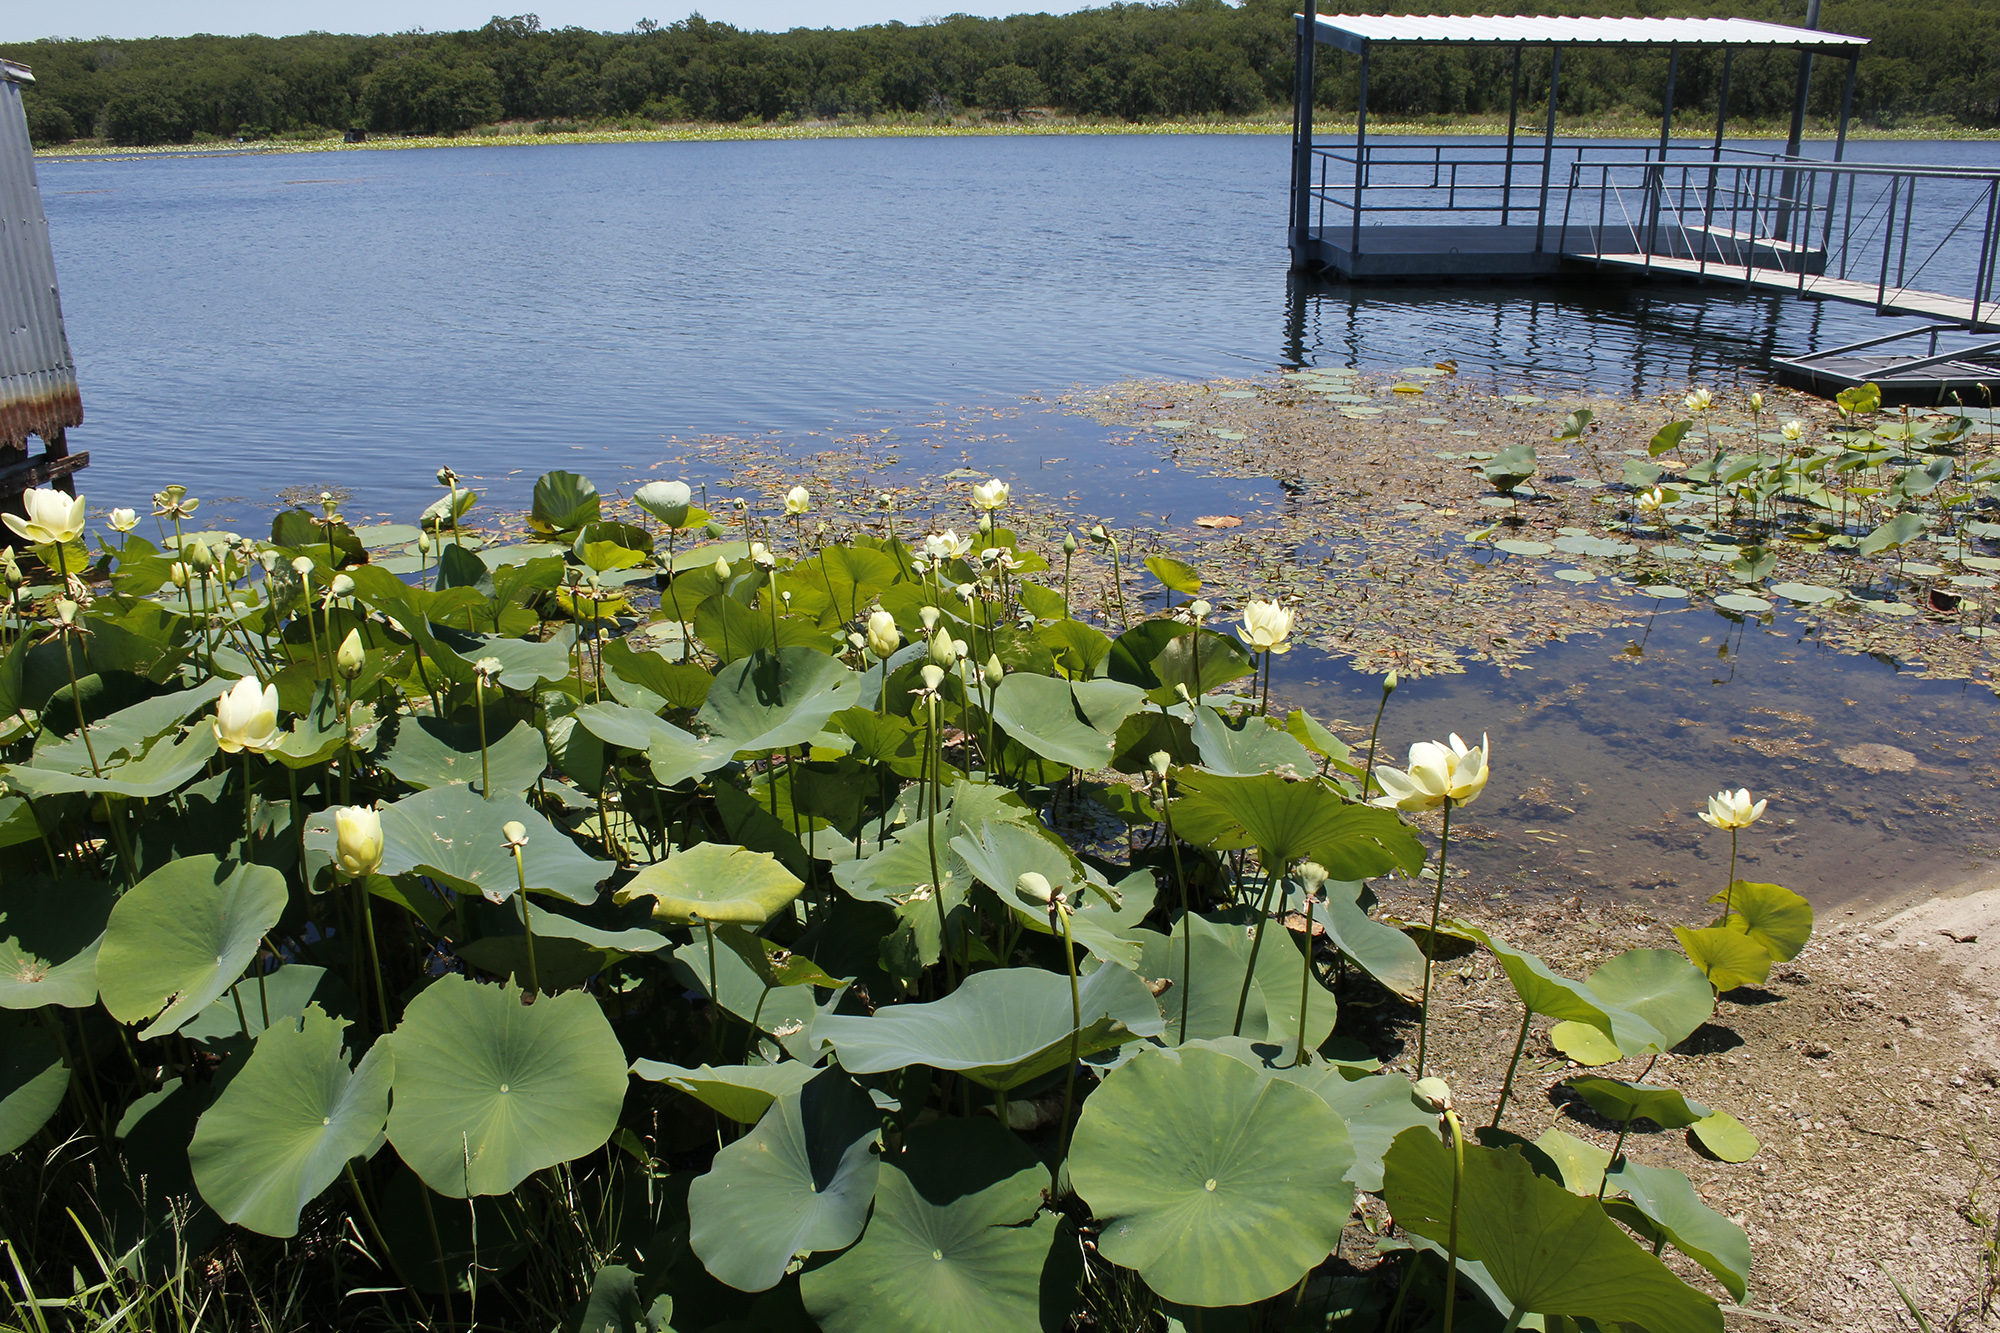 aquatic vegetation